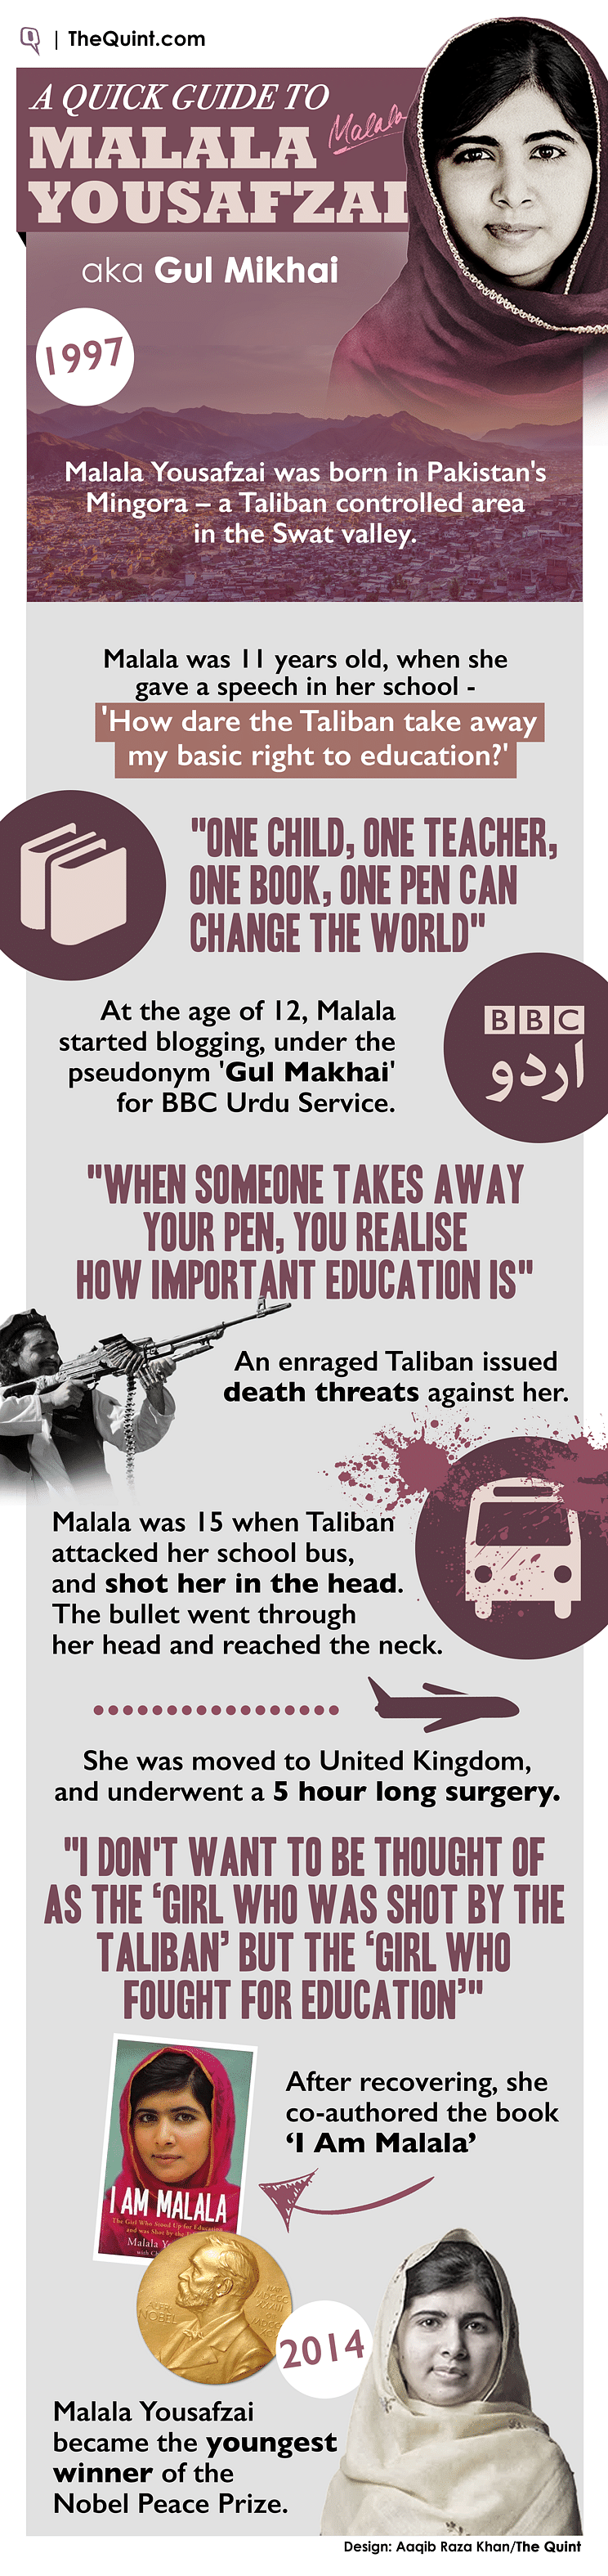 <b>The Quint</b>'s guide to Malala Yousafzai.